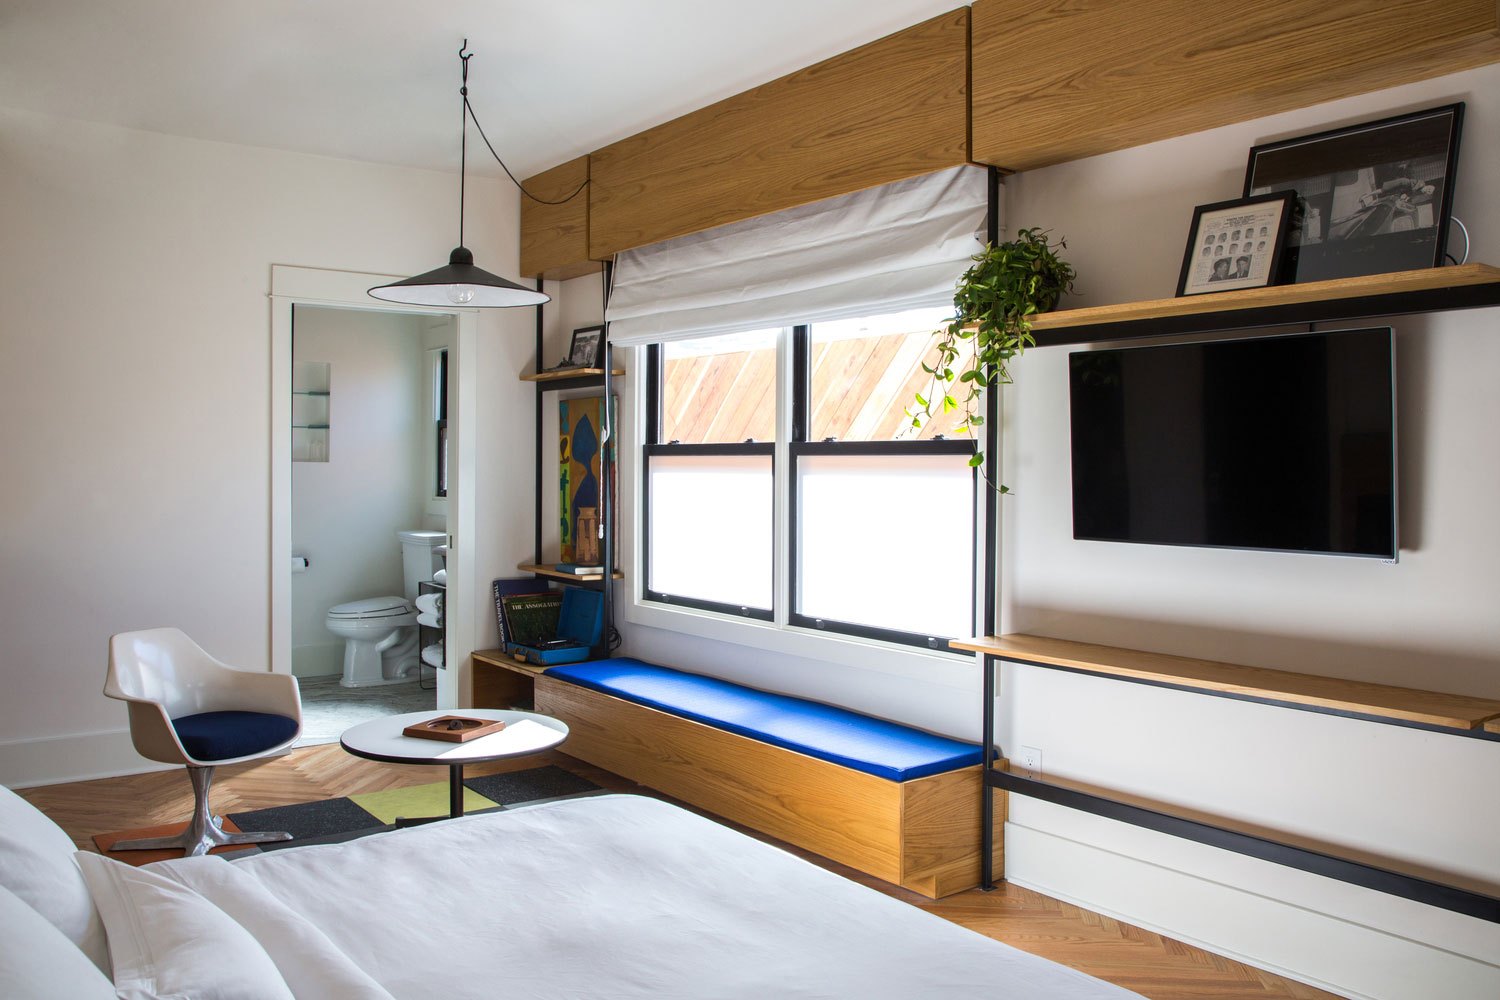 Hotel Covell in LA | Yellowtrace